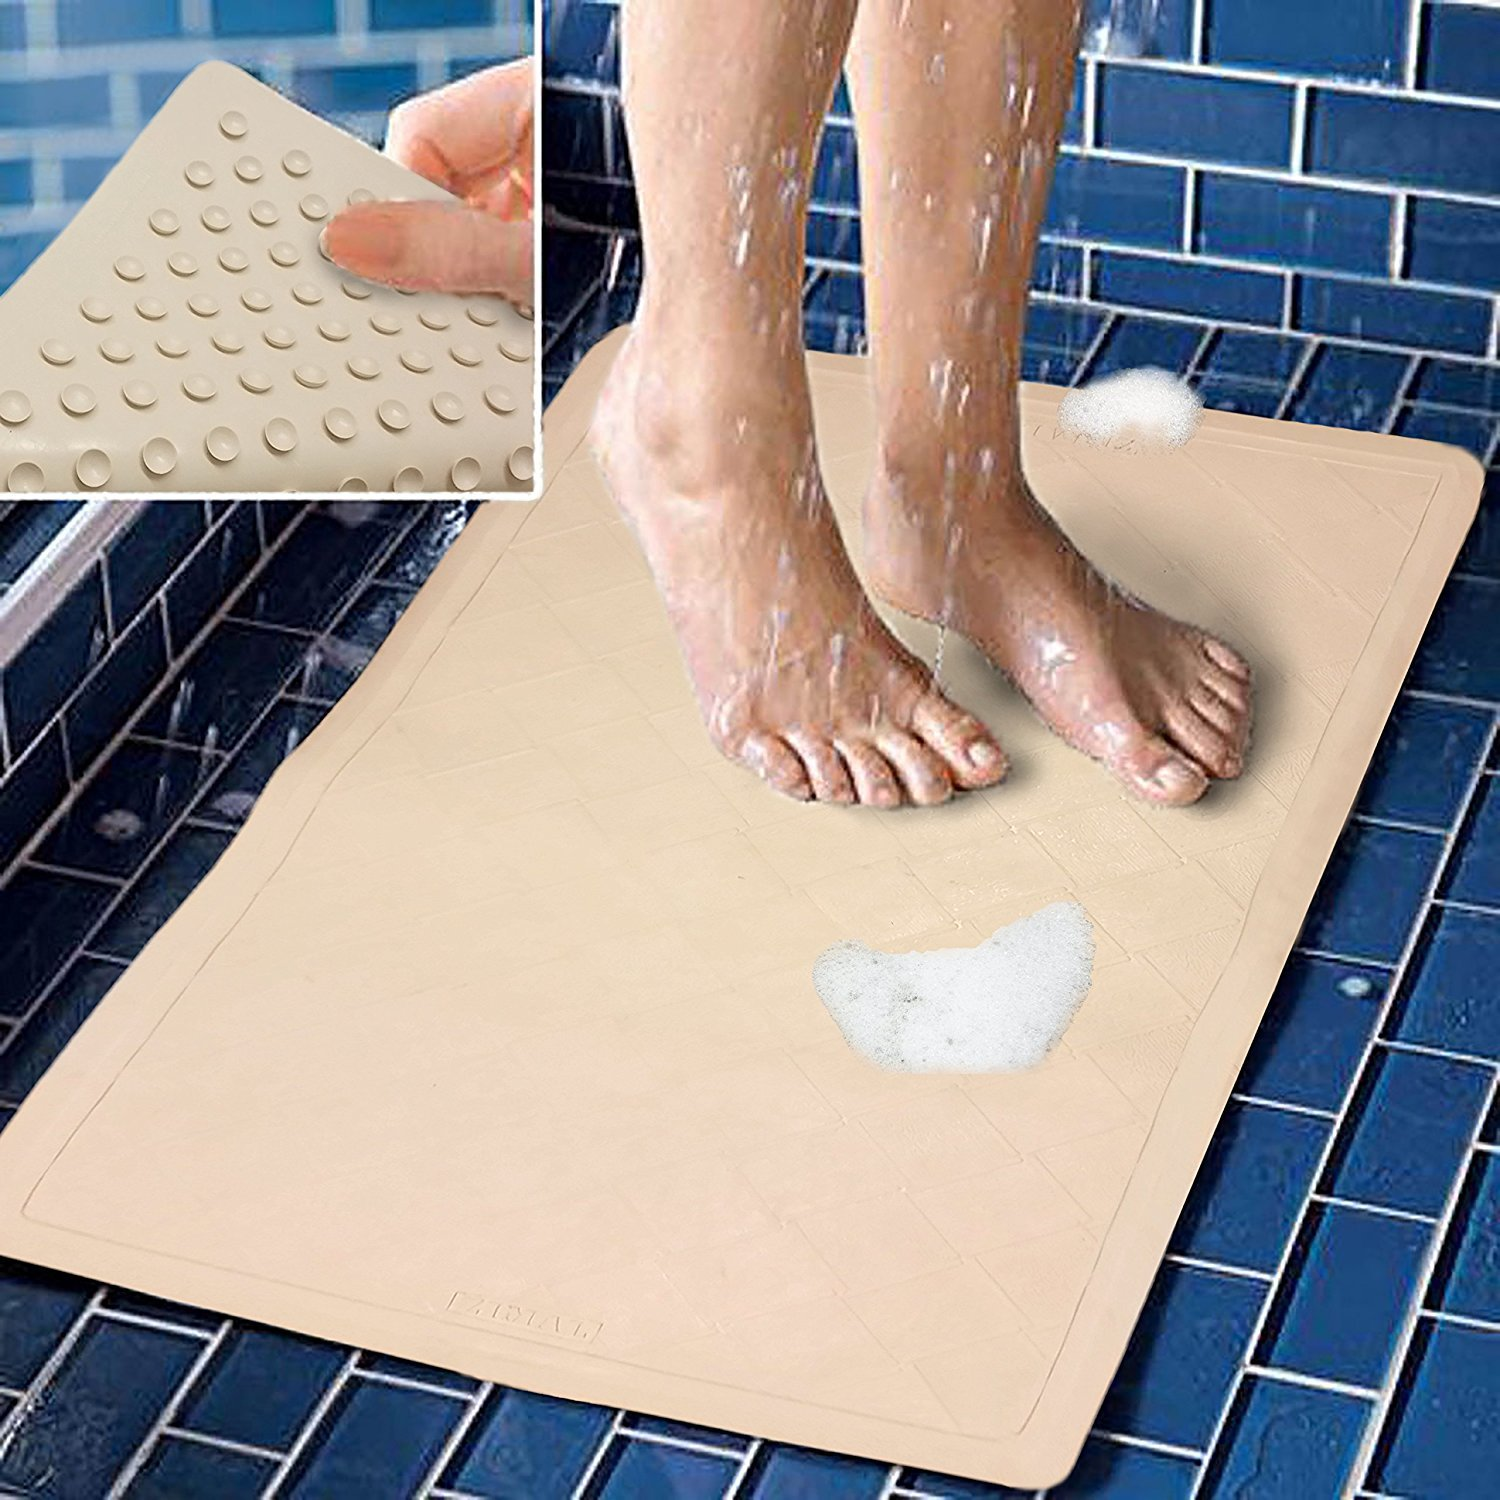 Bath Mat Non Slip Rubber With Super Strong Suction Cups Stays In Place Great for Shower Tubs or Laundry Room Floors 22 by 14 Inches By Decor Hut